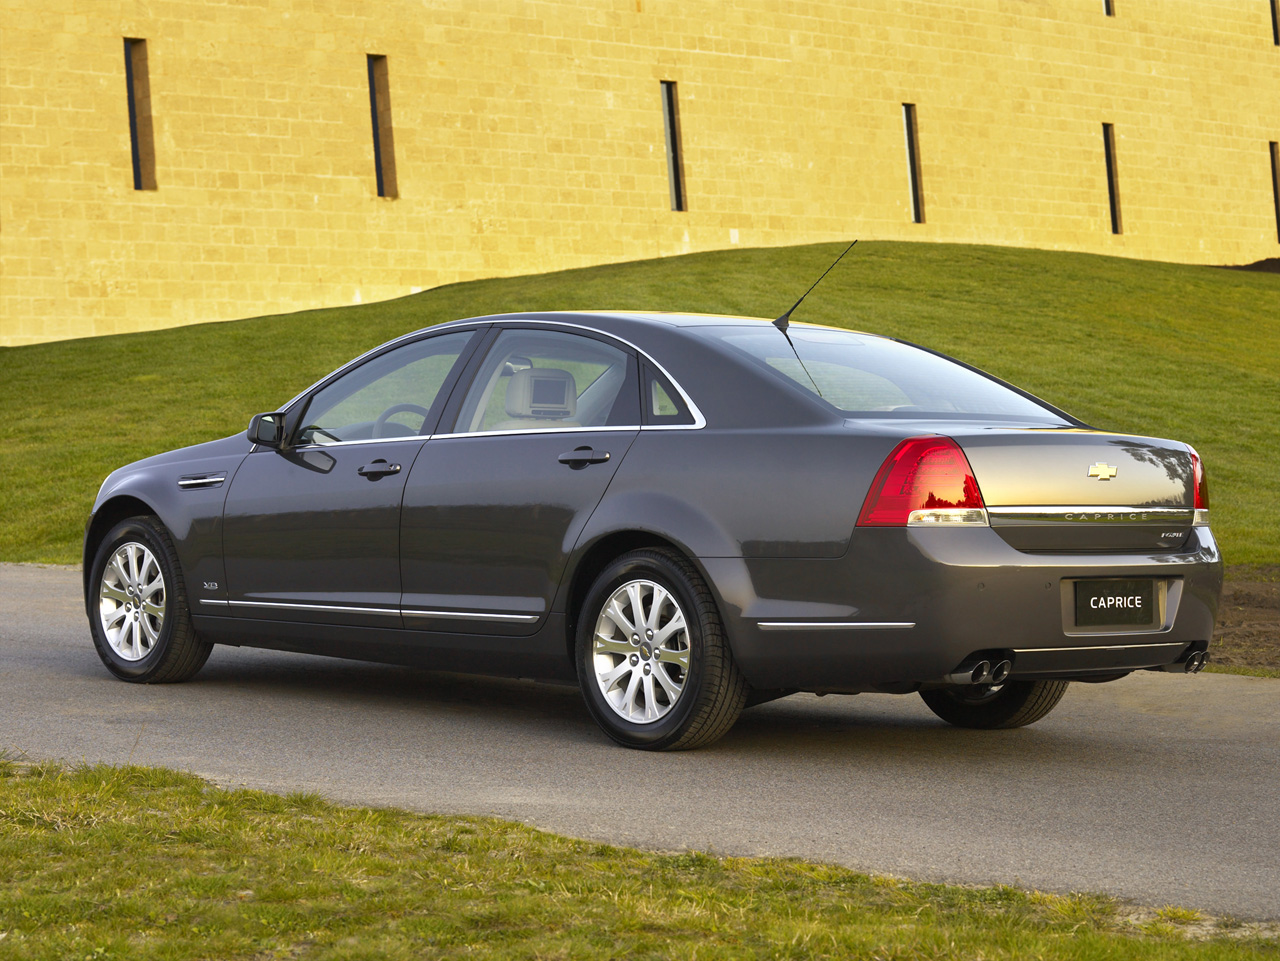 All Chevy chevy caprice 2013 : 2009 Chevrolet Caprice (Middle East) Photo Gallery - Autoblog